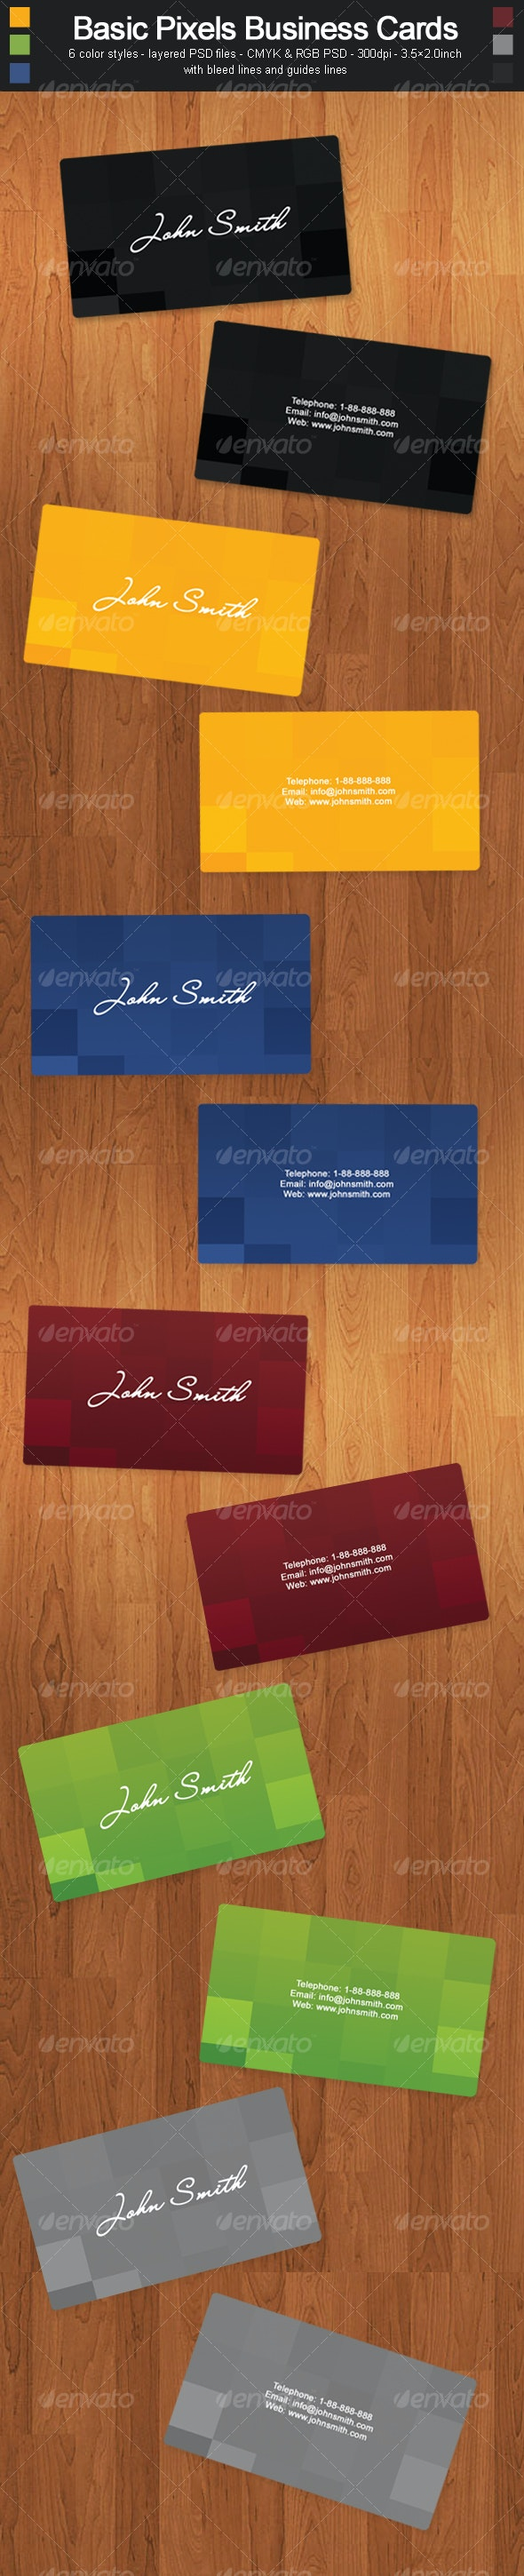 Basic Pixels Business Cards - Corporate Business Cards